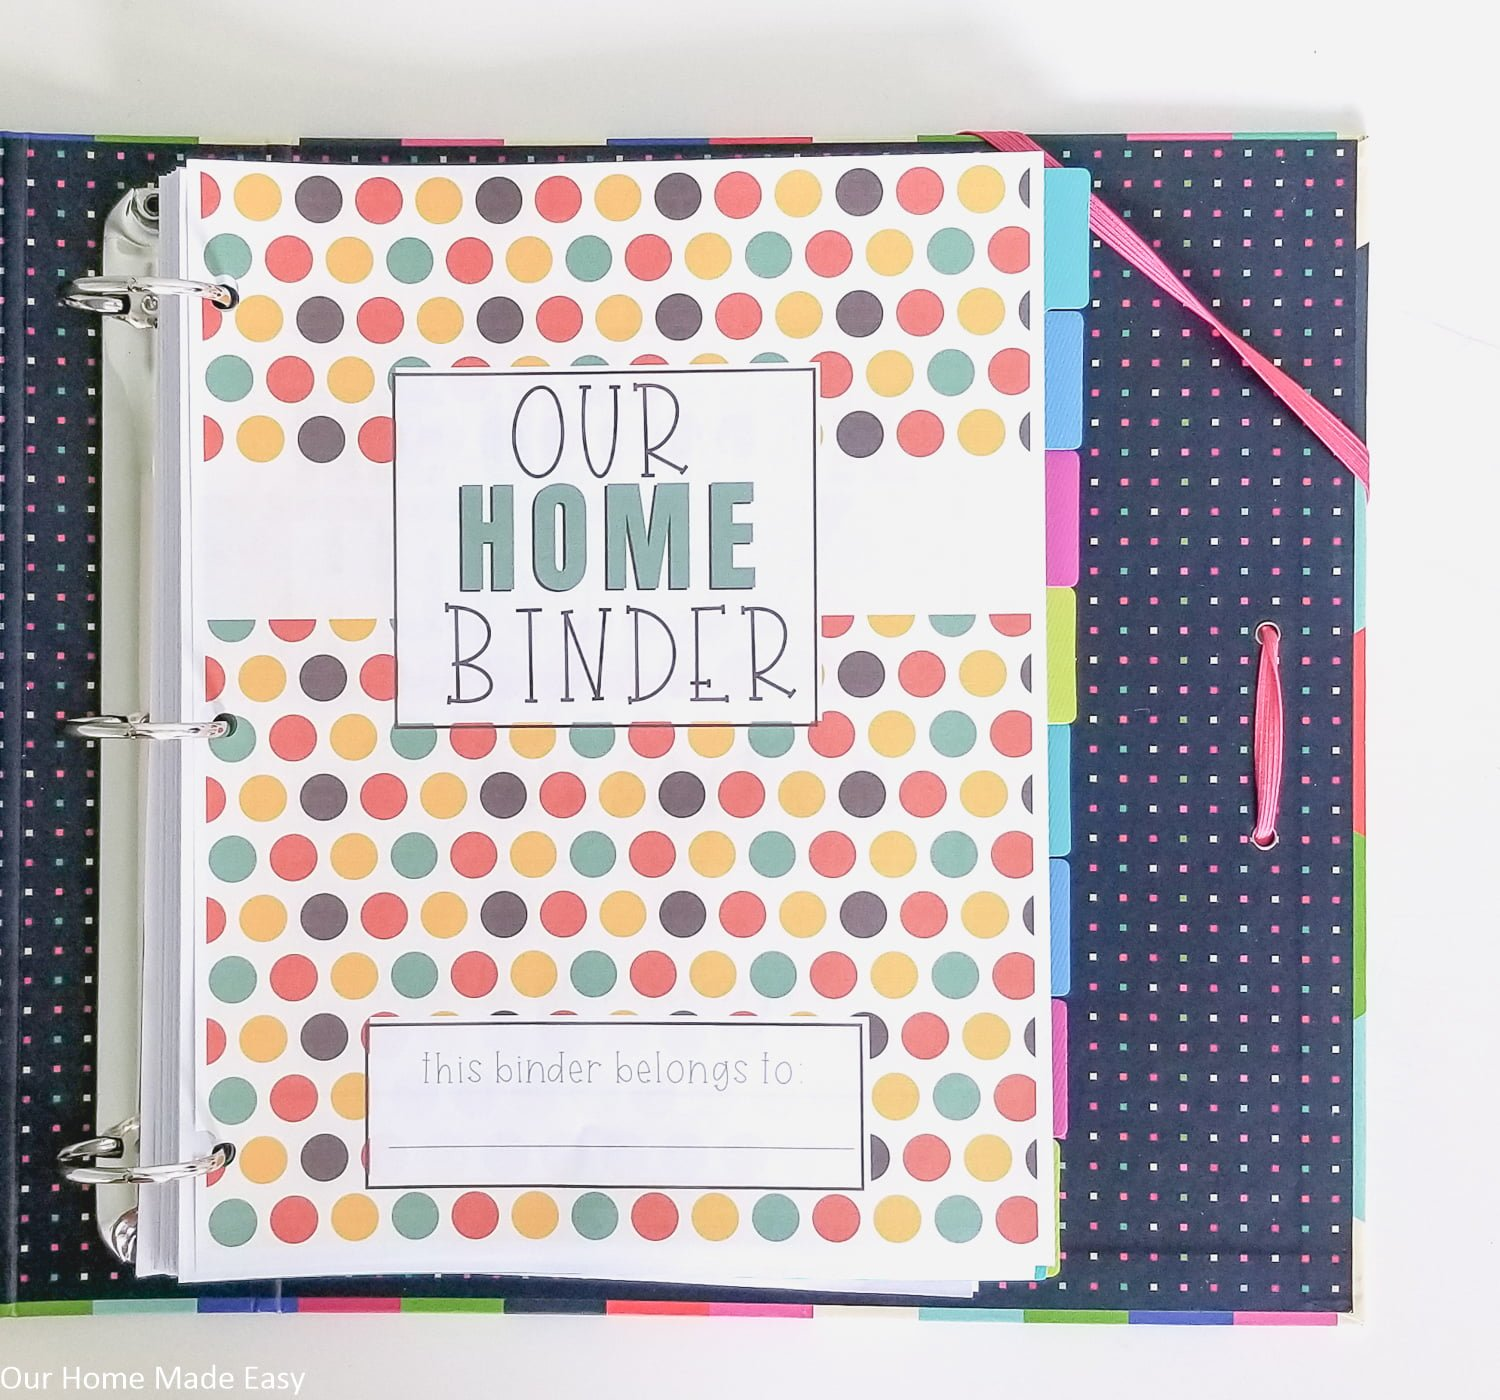 Your home binder is your one-stop home organization command center, make sure it's prepped for the season with these free autumn home binder covers